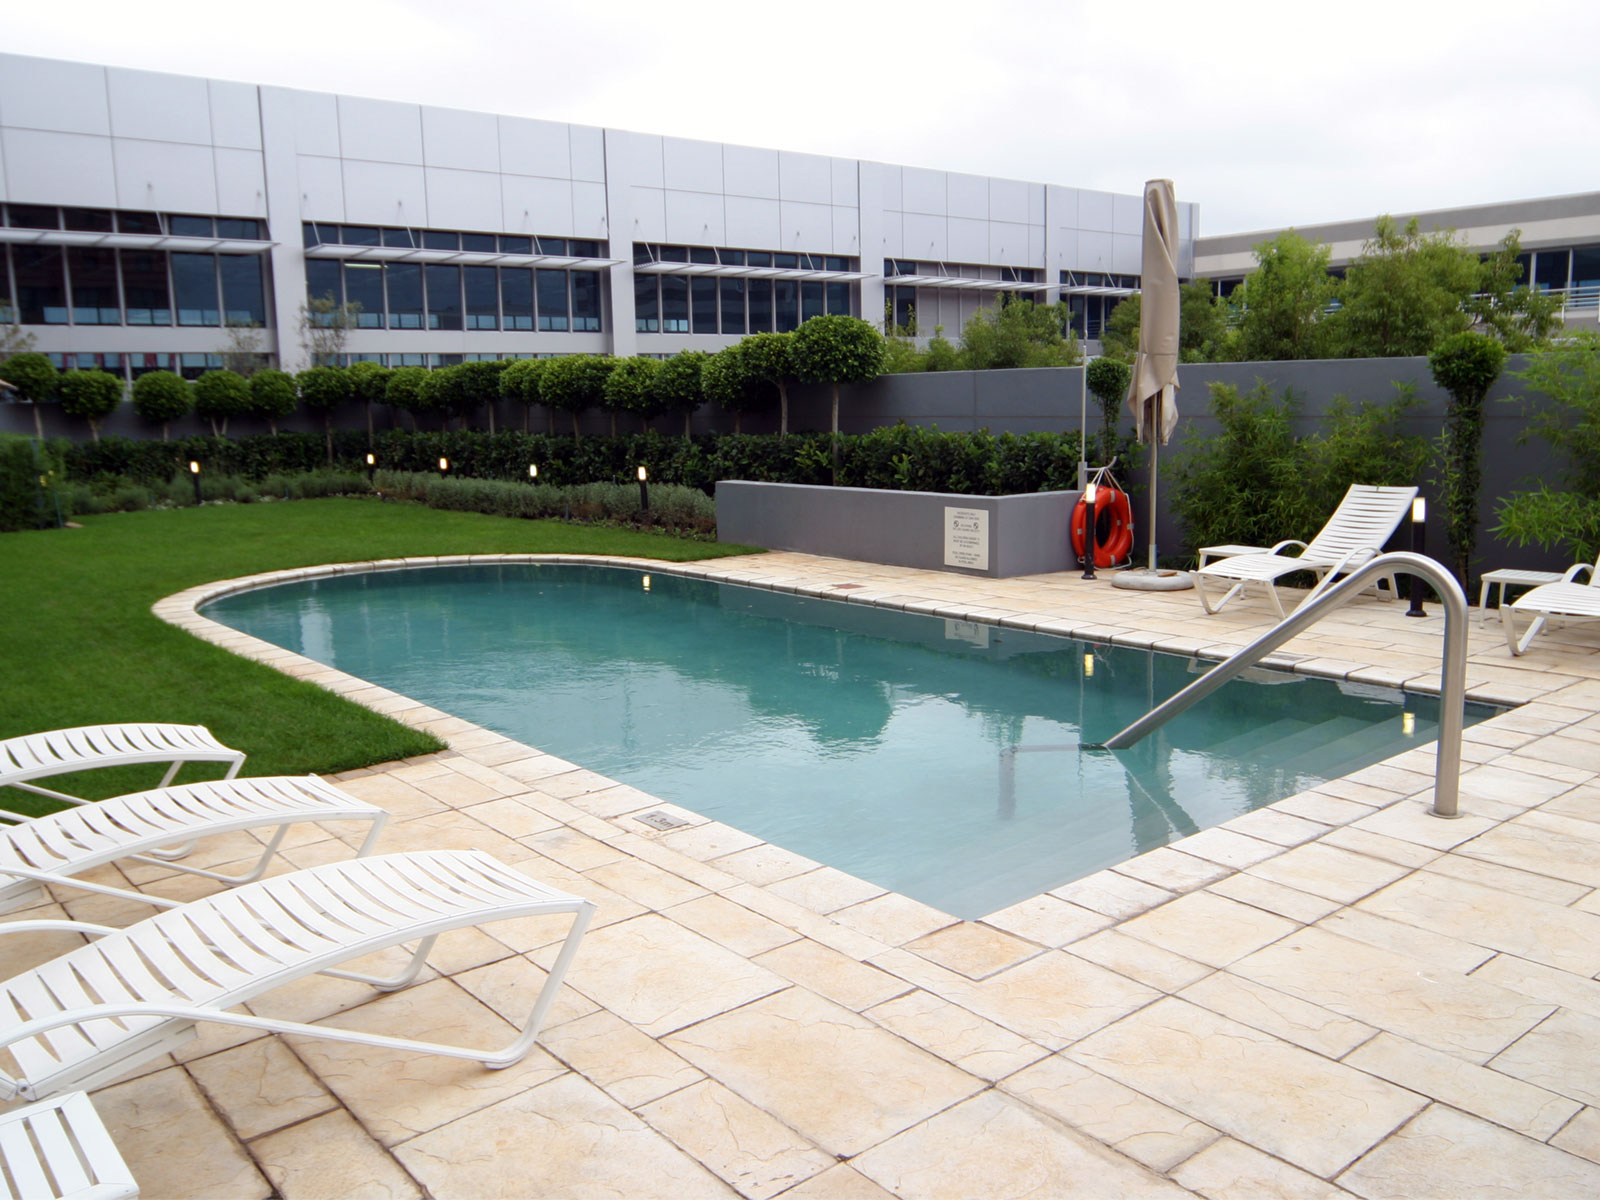 Holiday Inn Outdoor pool